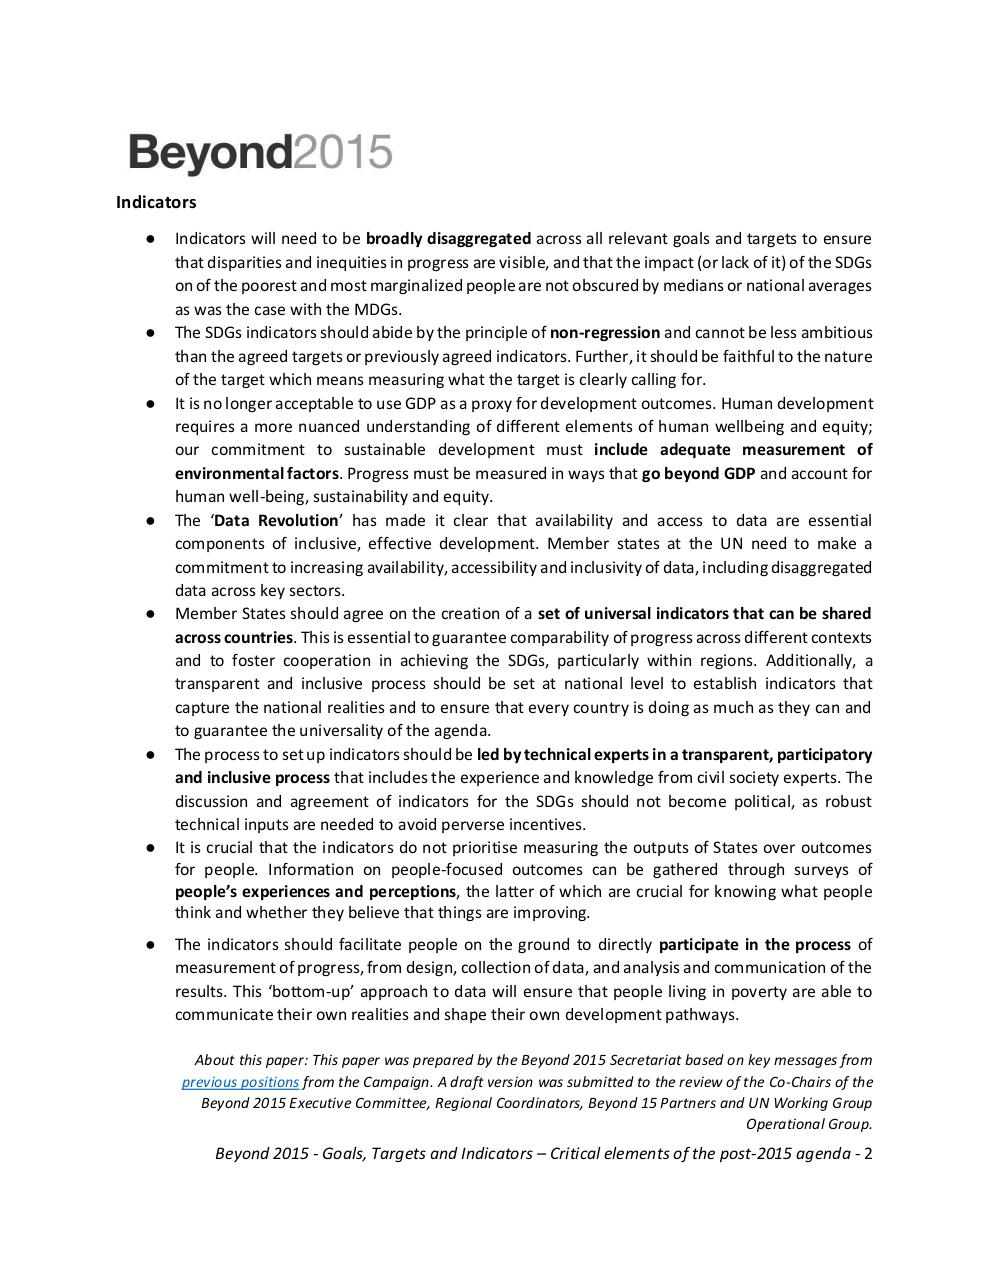 FINAL B2015 Key Messages for 3rd IGN - March 2015.pdf - page 2/2